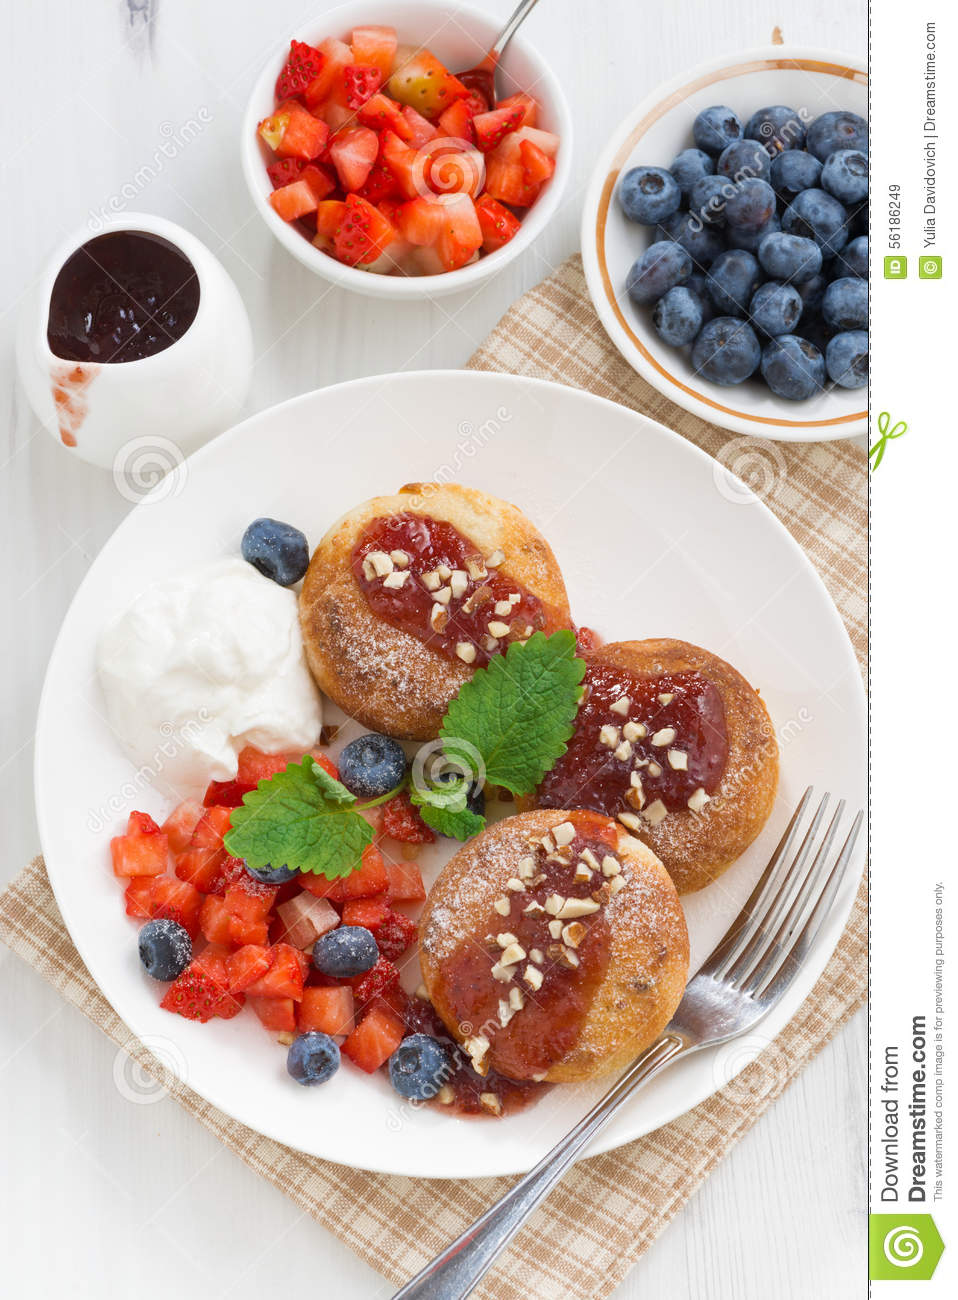 Sweet Cheese Pancakes With Fresh Berries And Cream Stock Photo - Image ...